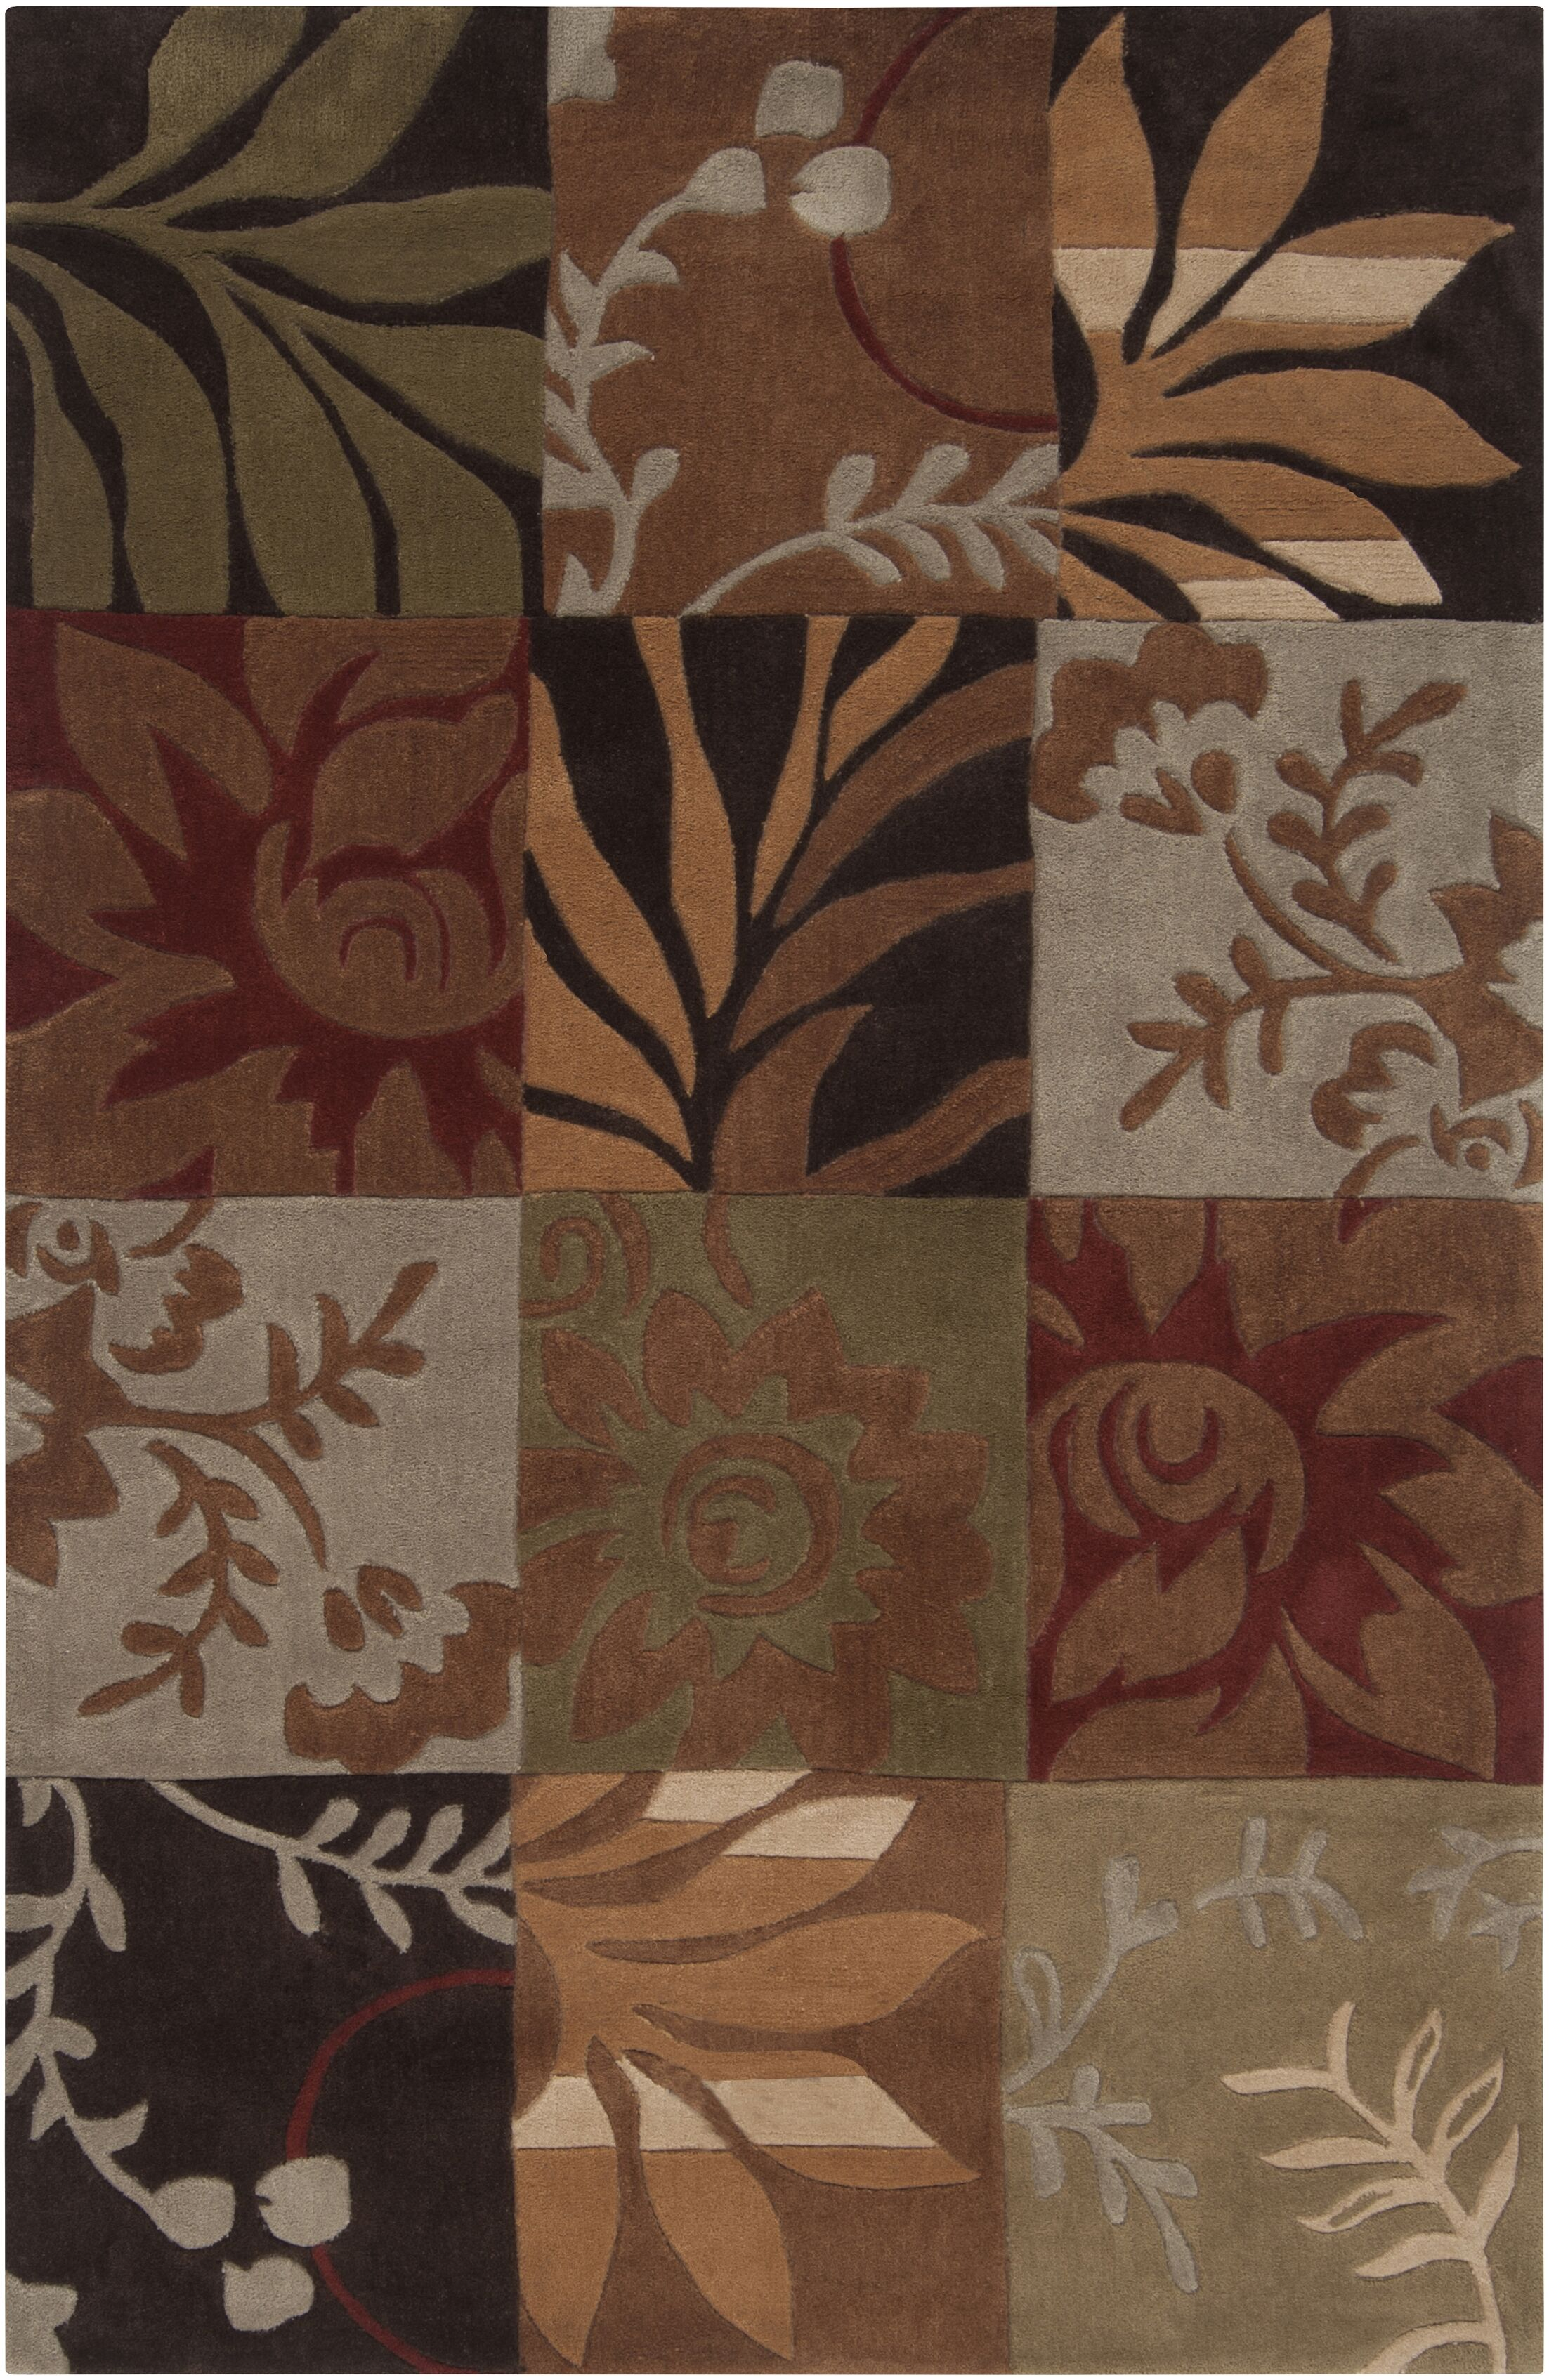 Funderburk Hand-Tufted Olive/Garnet Area Rug Rug Size: Rectangle 9' x 12'